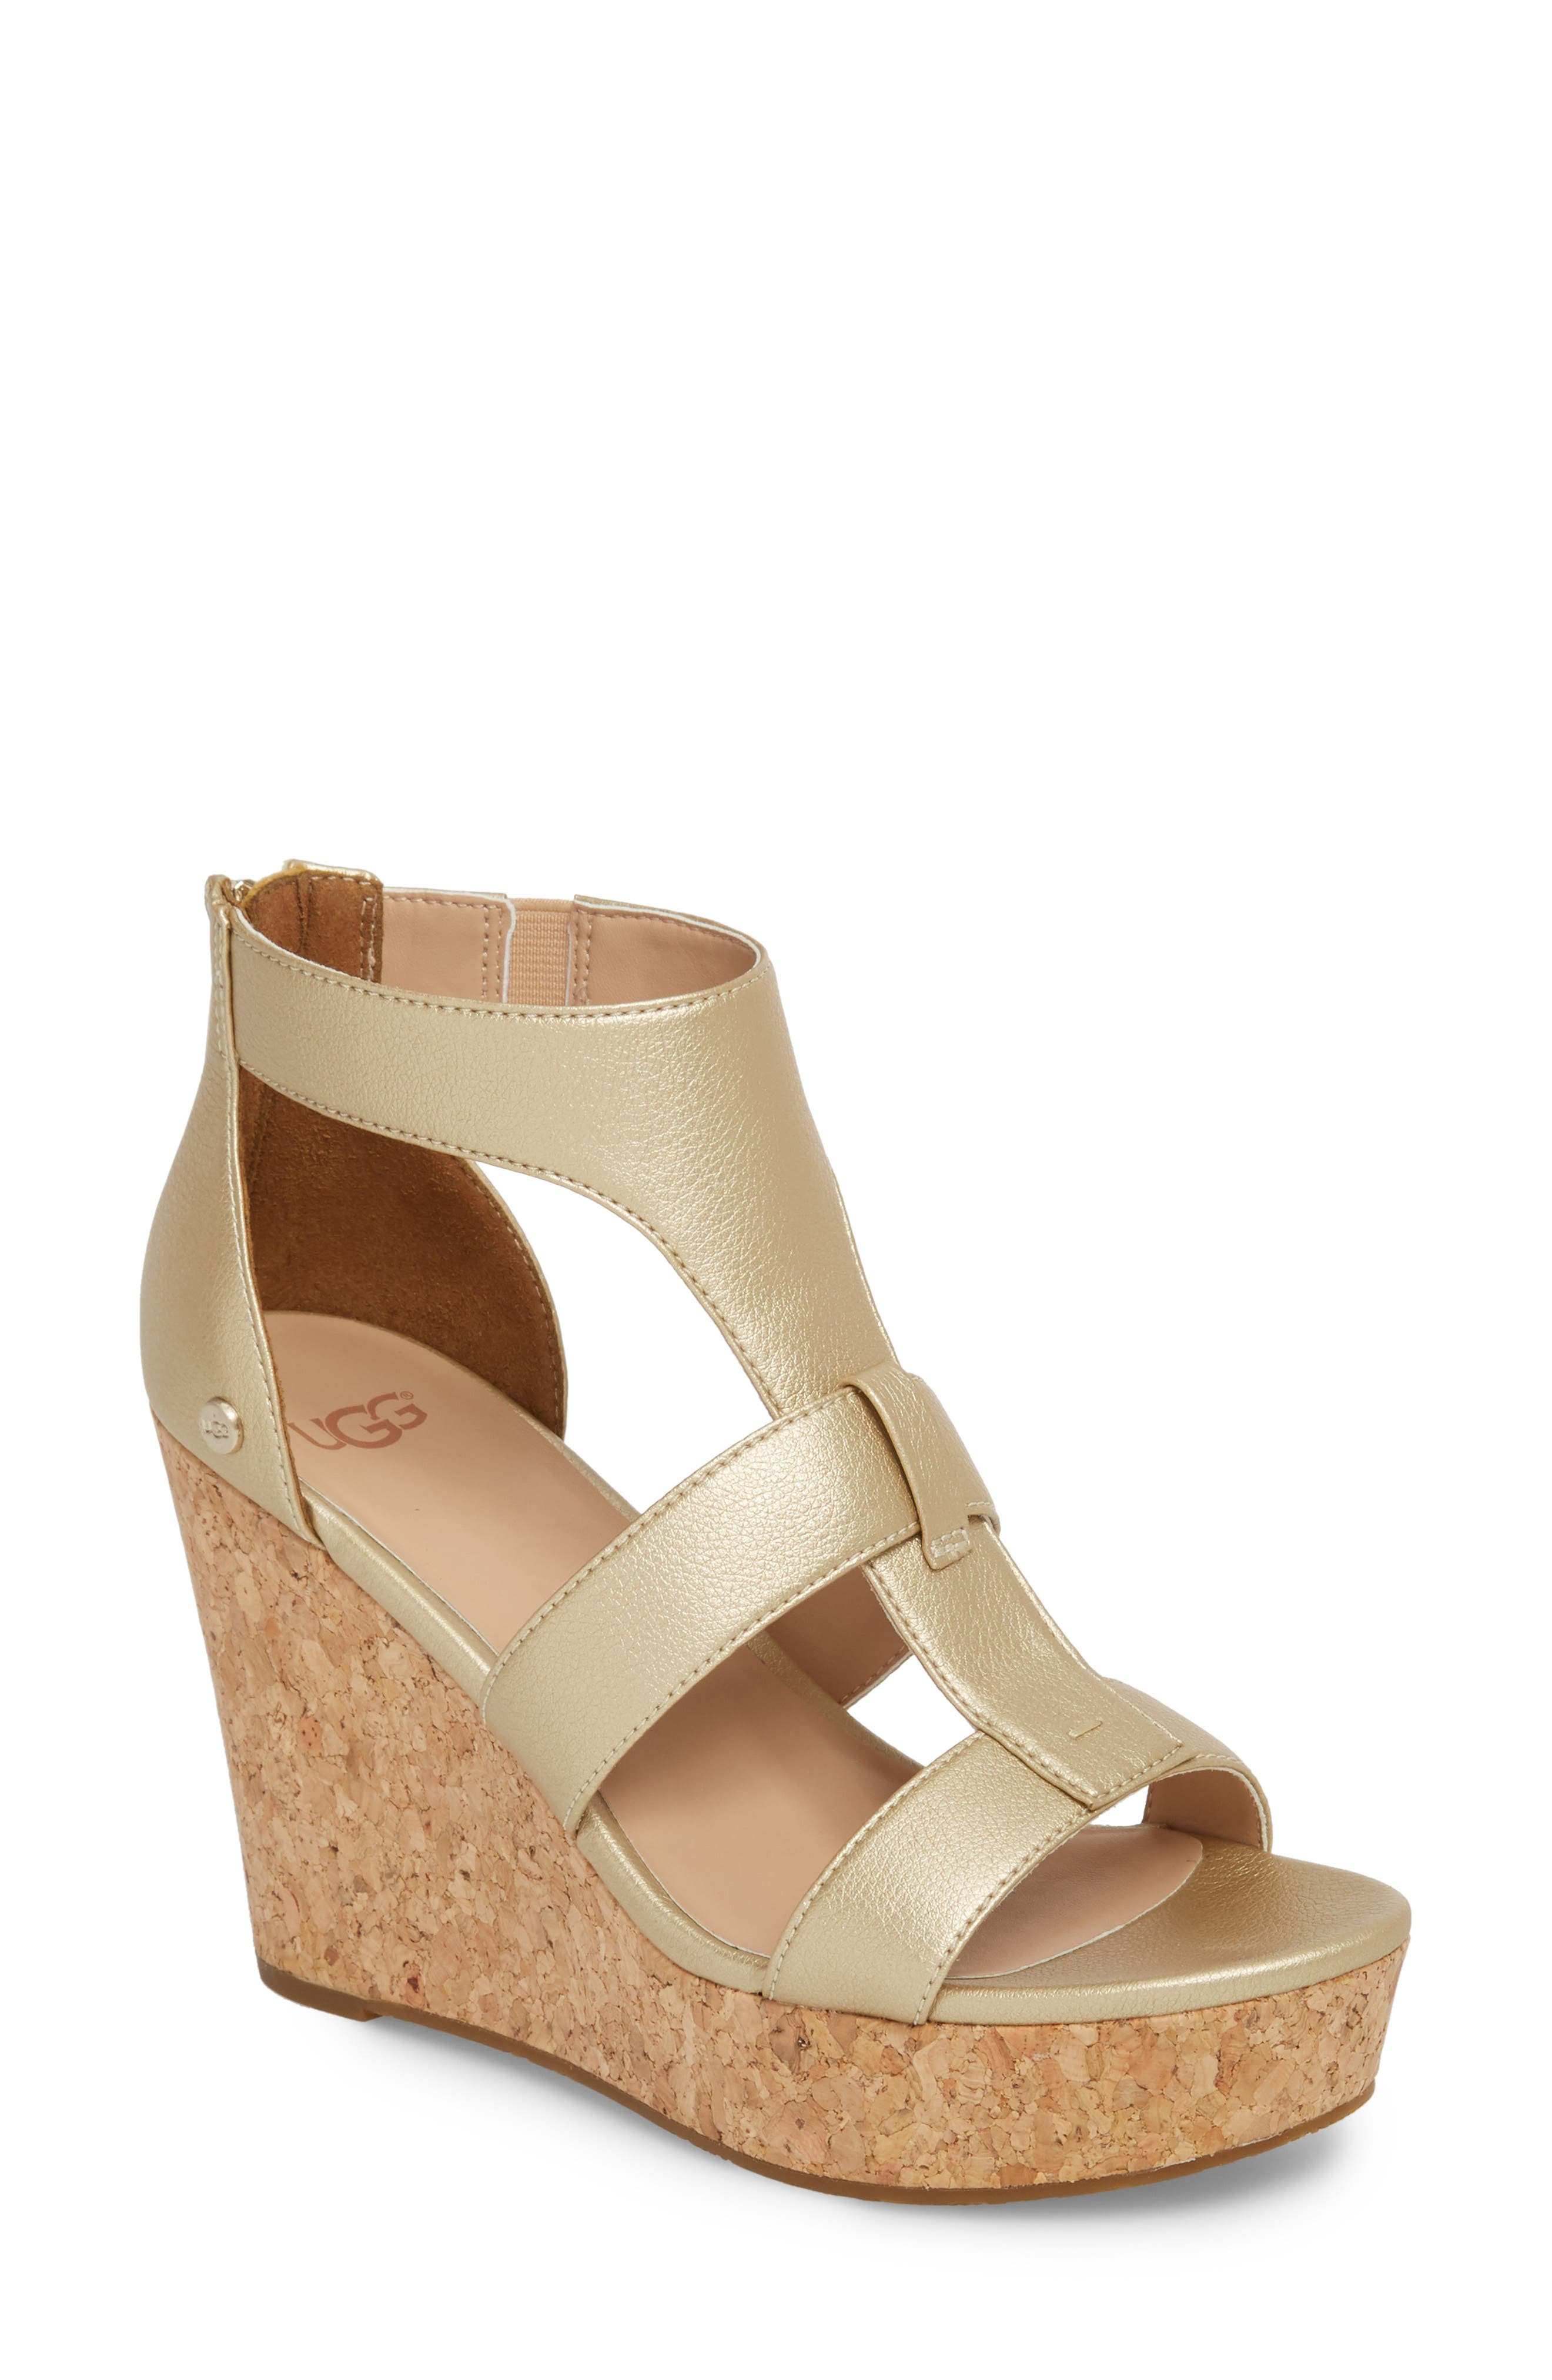 Whitney Platform Wedge Sandal,                         Main,                         color, GOLD LEATHER